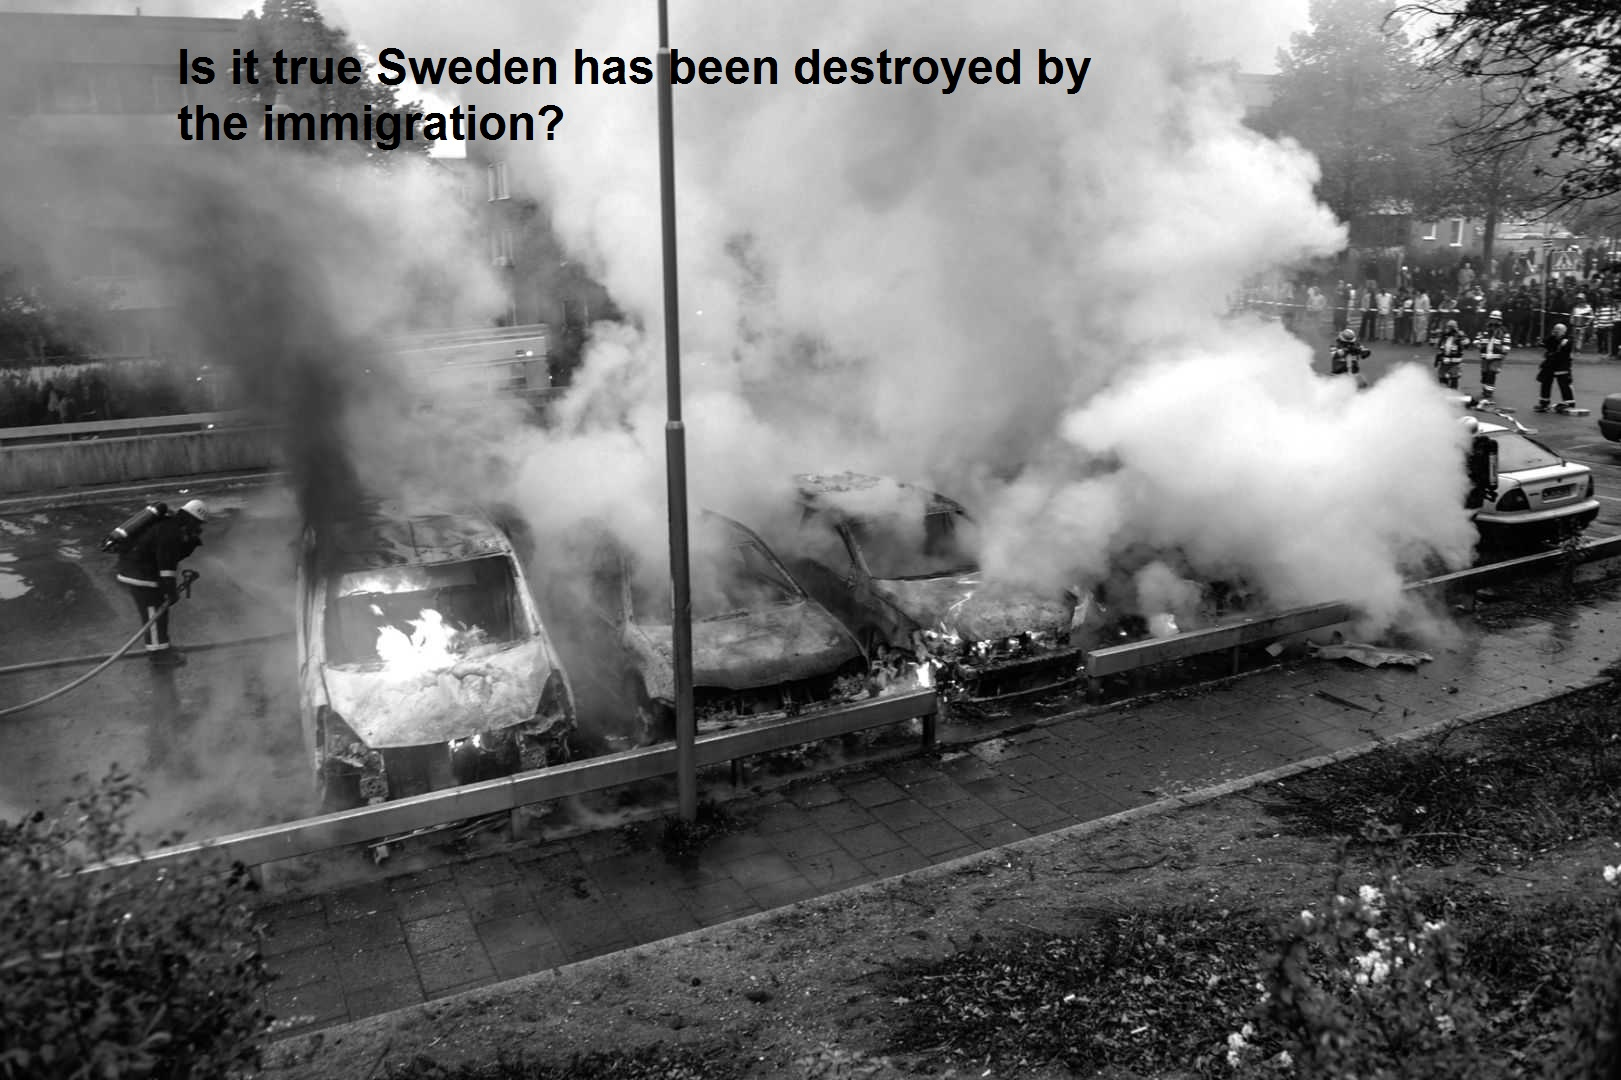 Is it true Sweden has been destroyed by the immigration?